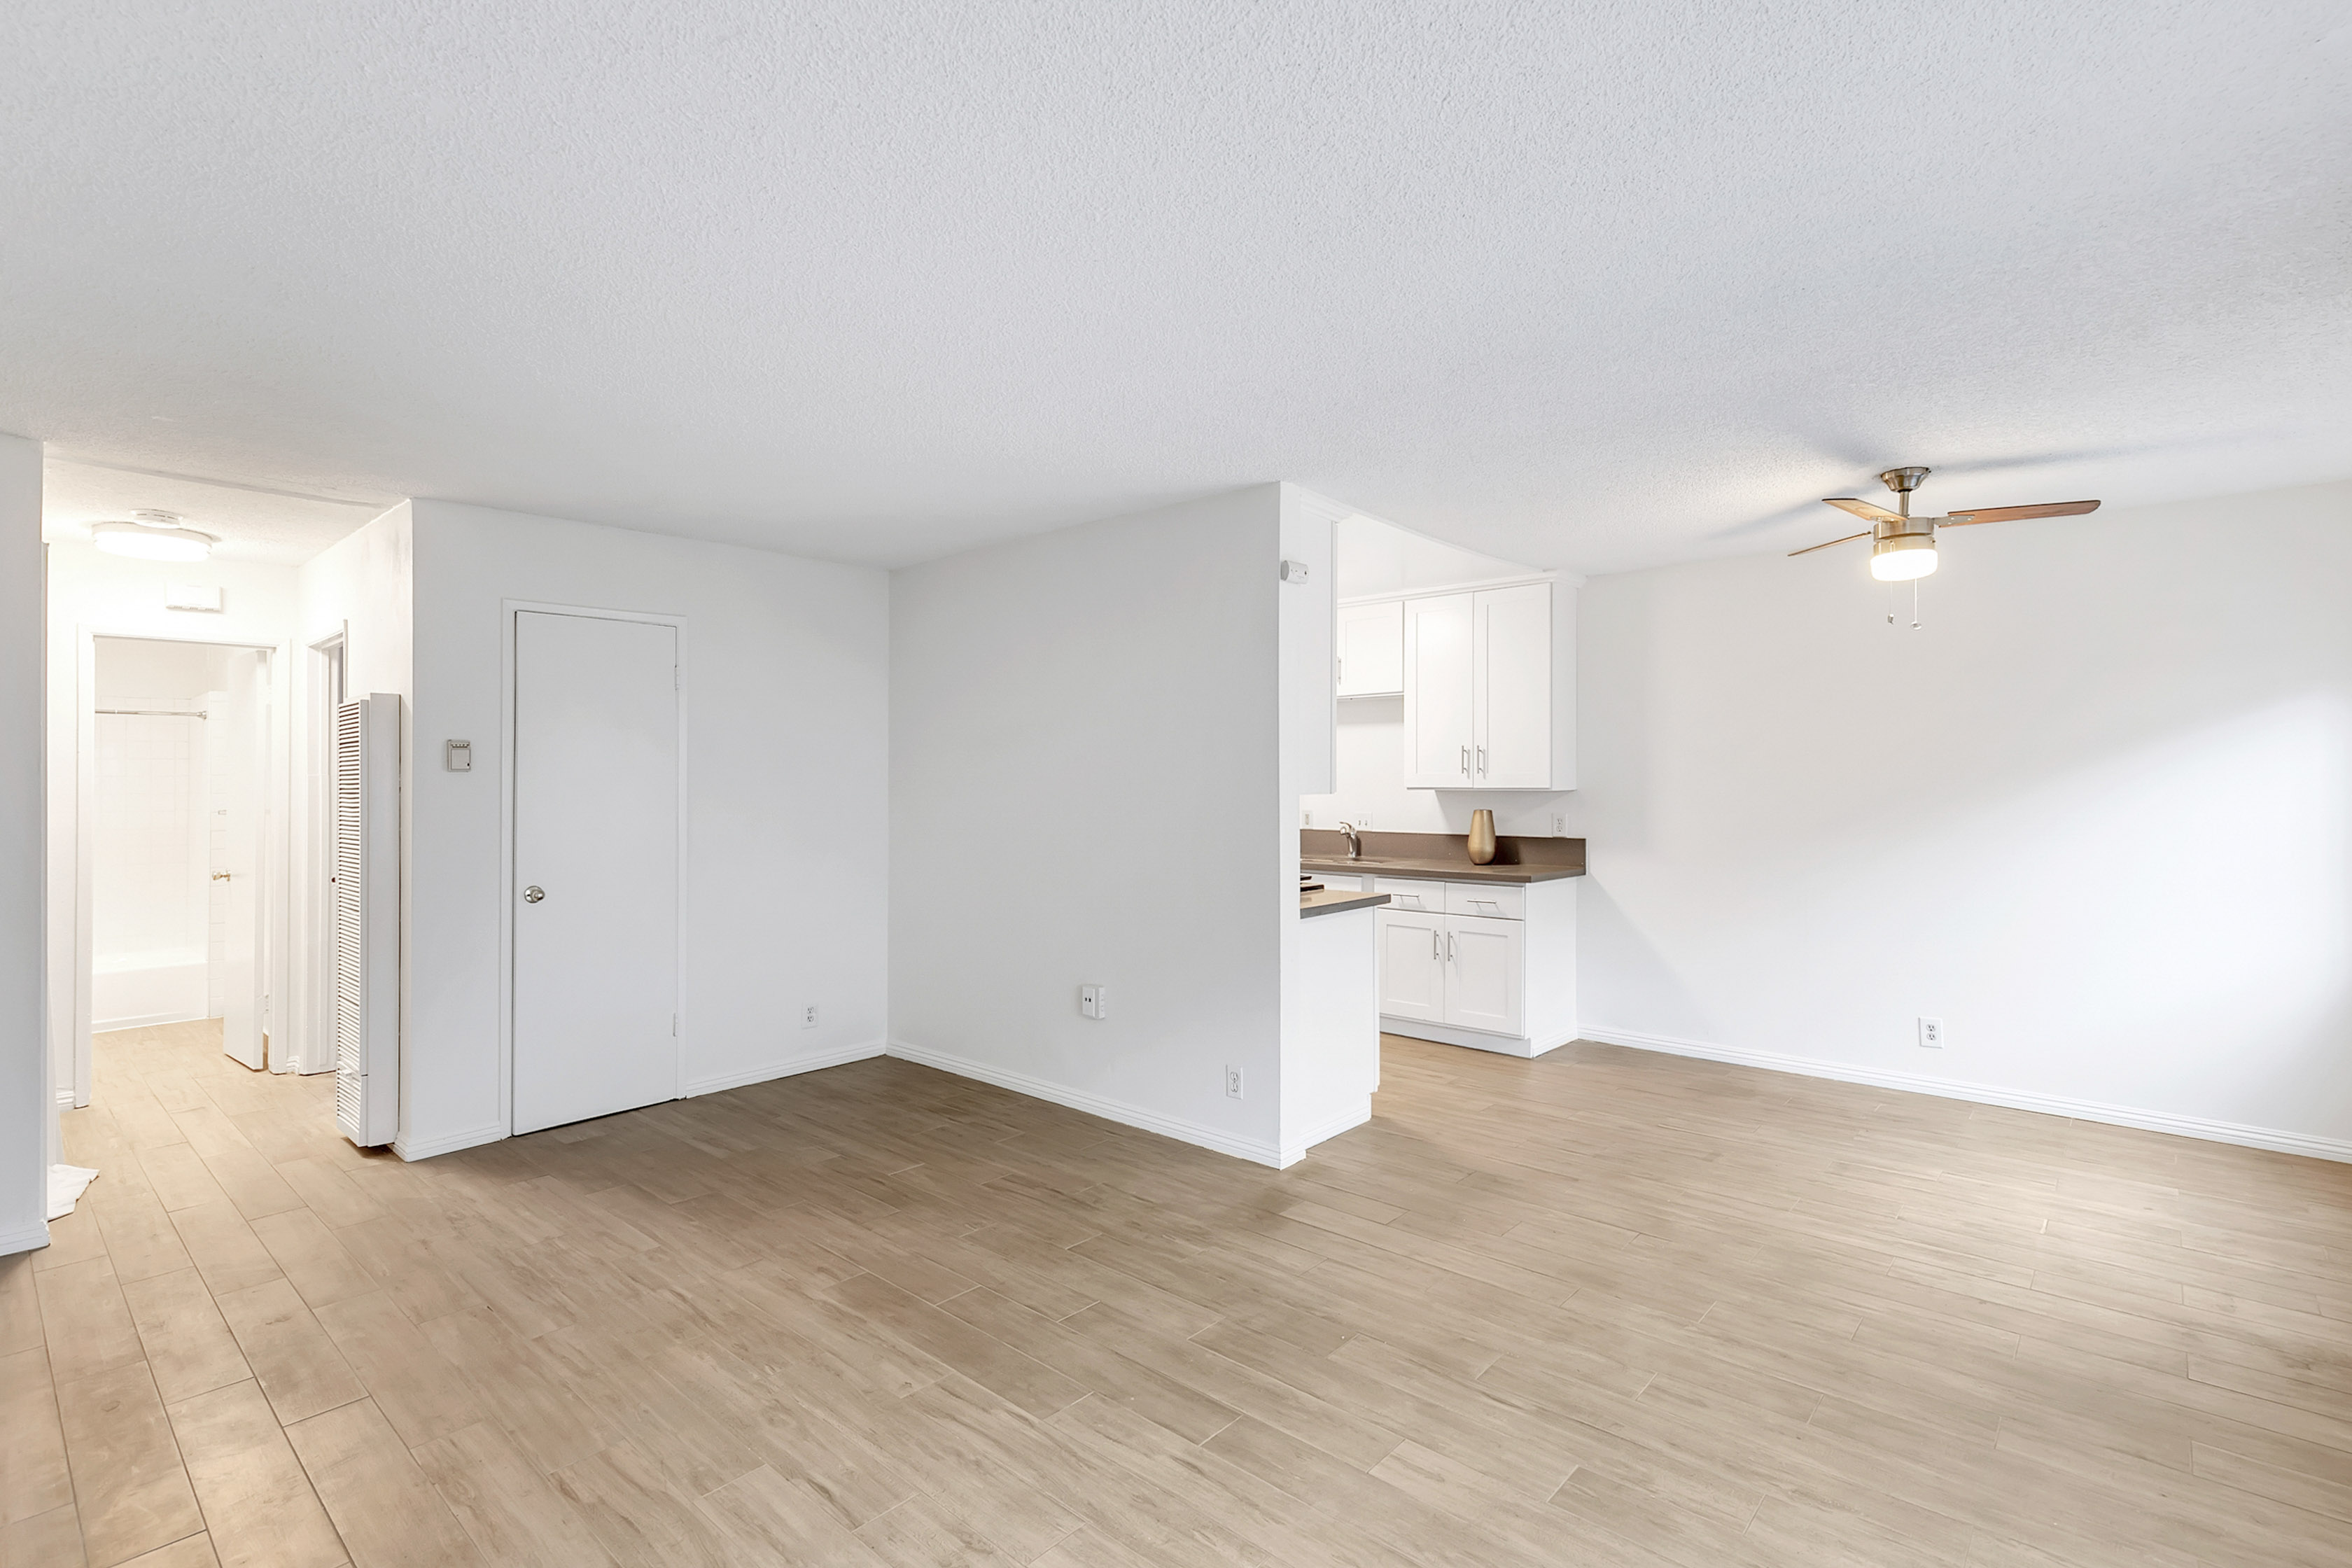 Quaint El Sereno 1 Bed/ 1 Bath | Modern & Updated | First Floor Unit | 2 Parking Spaces Available!